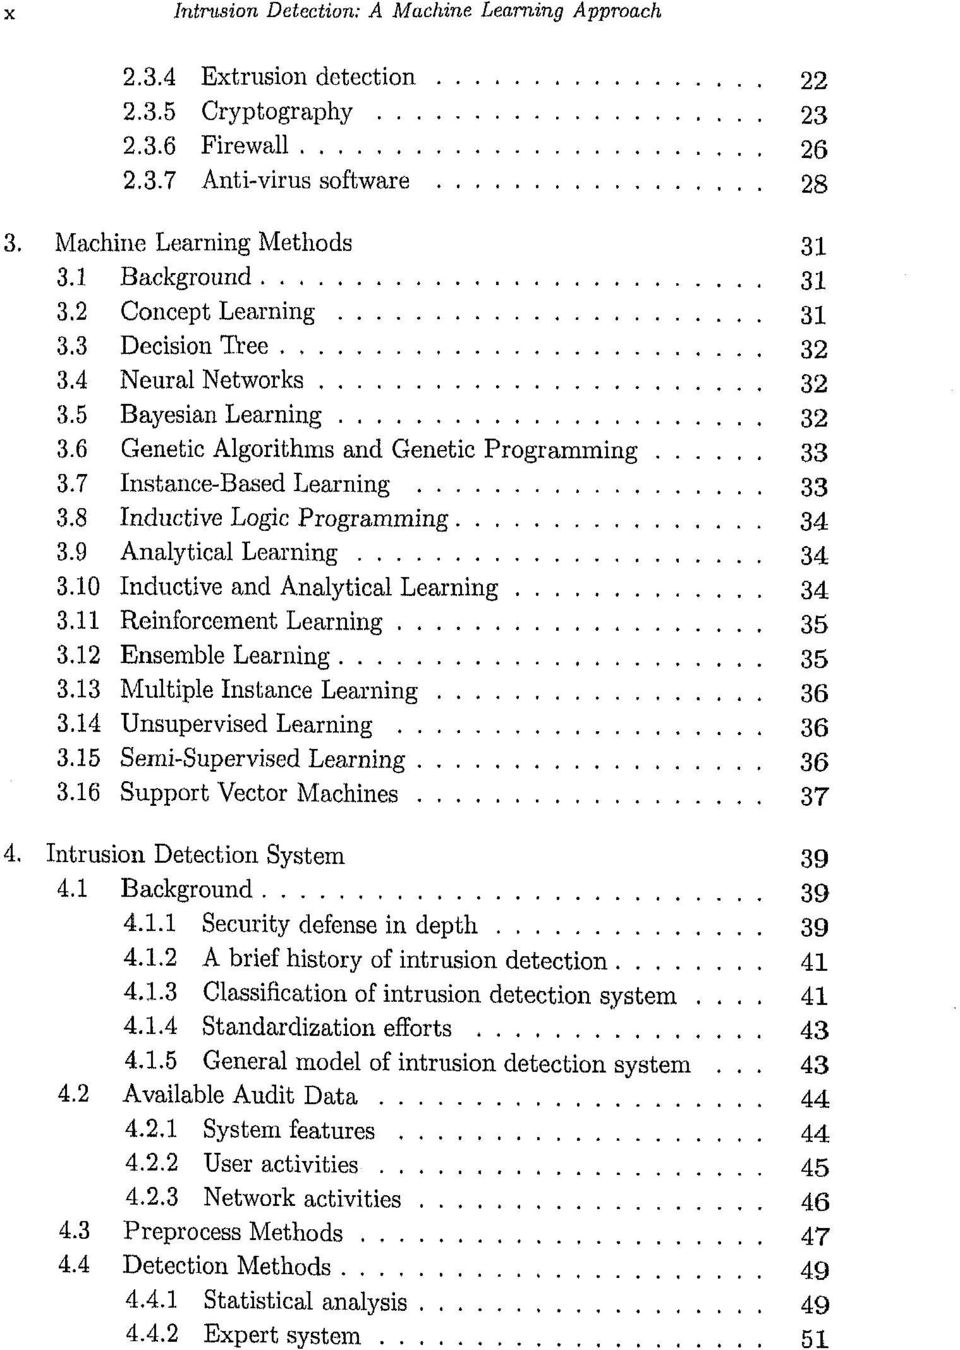 8 Inductive Logic Programming 34 3.9 Analytical Learning 34 3.10 Inductive and Analytical Learning 34 3.11 Reinforcement Learning 35 3.12 Ensemble Learning 35 3.13 Multiple Instance Learning 36 3.